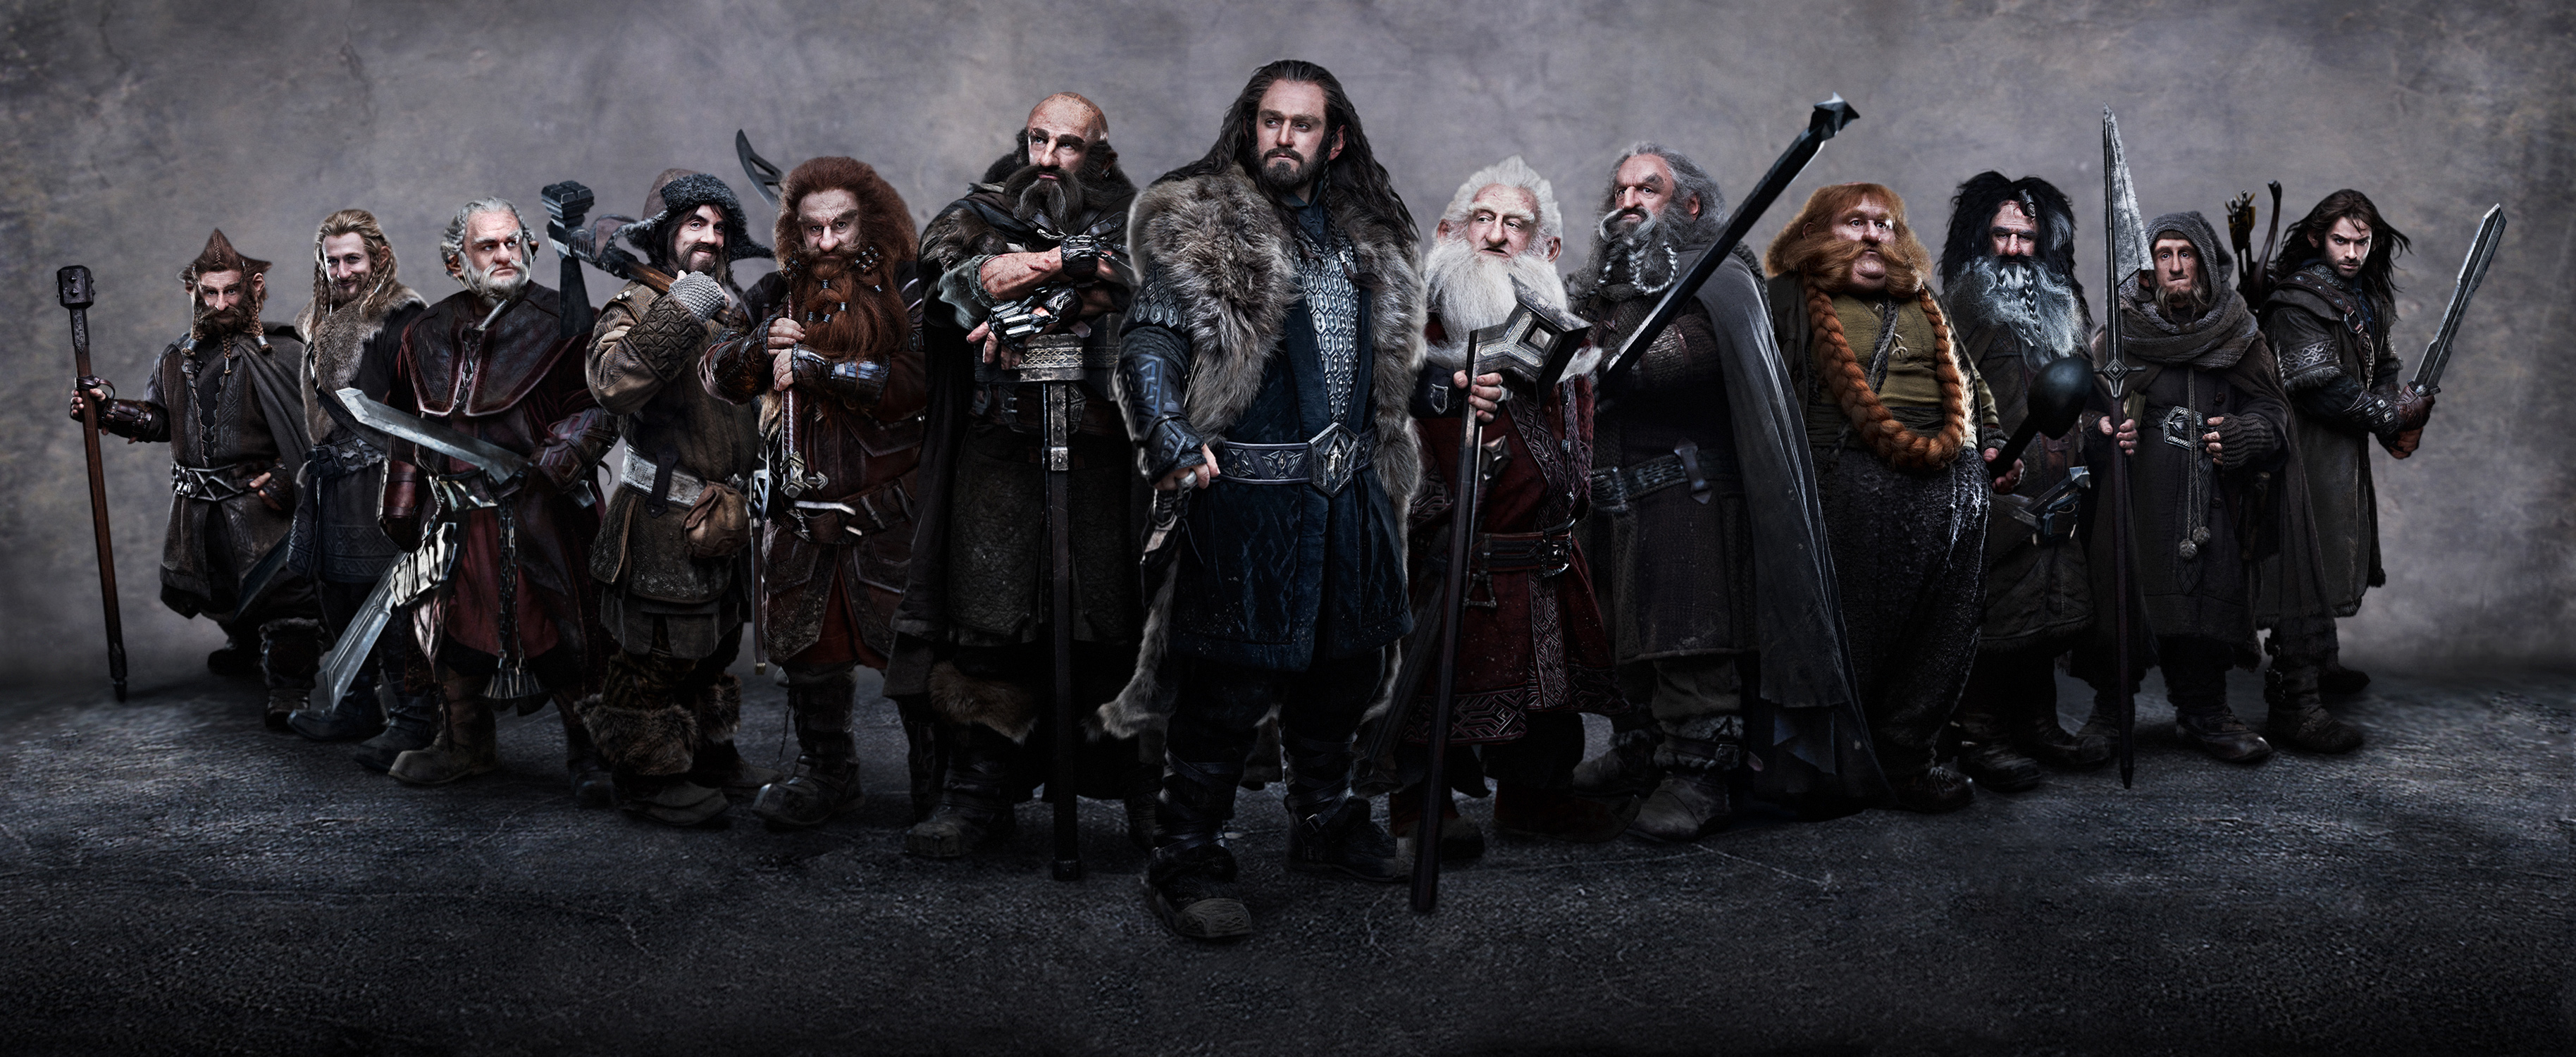 Peter Jackson Hobbit Dwarves First Image